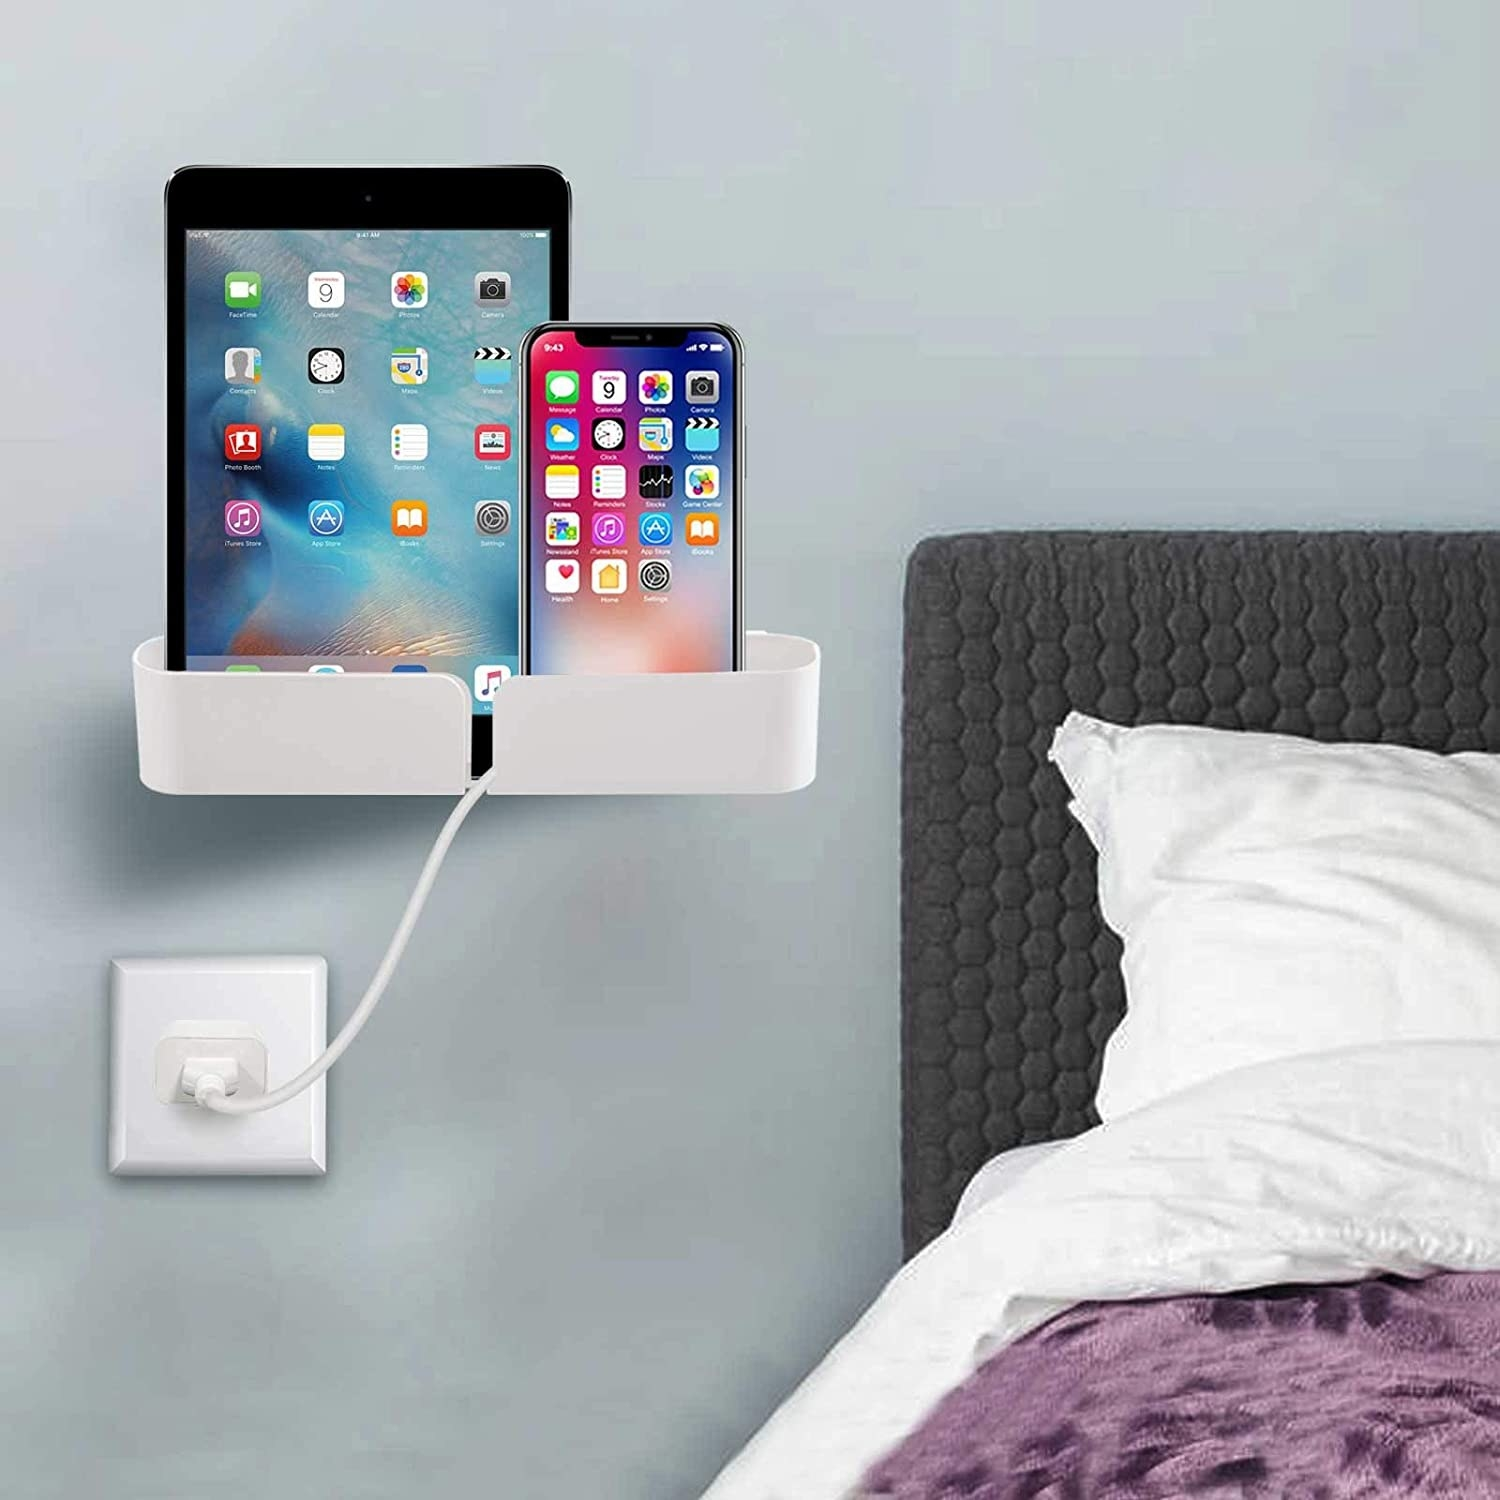 The bedside shelf holds a phone and a tablet and allows for charging